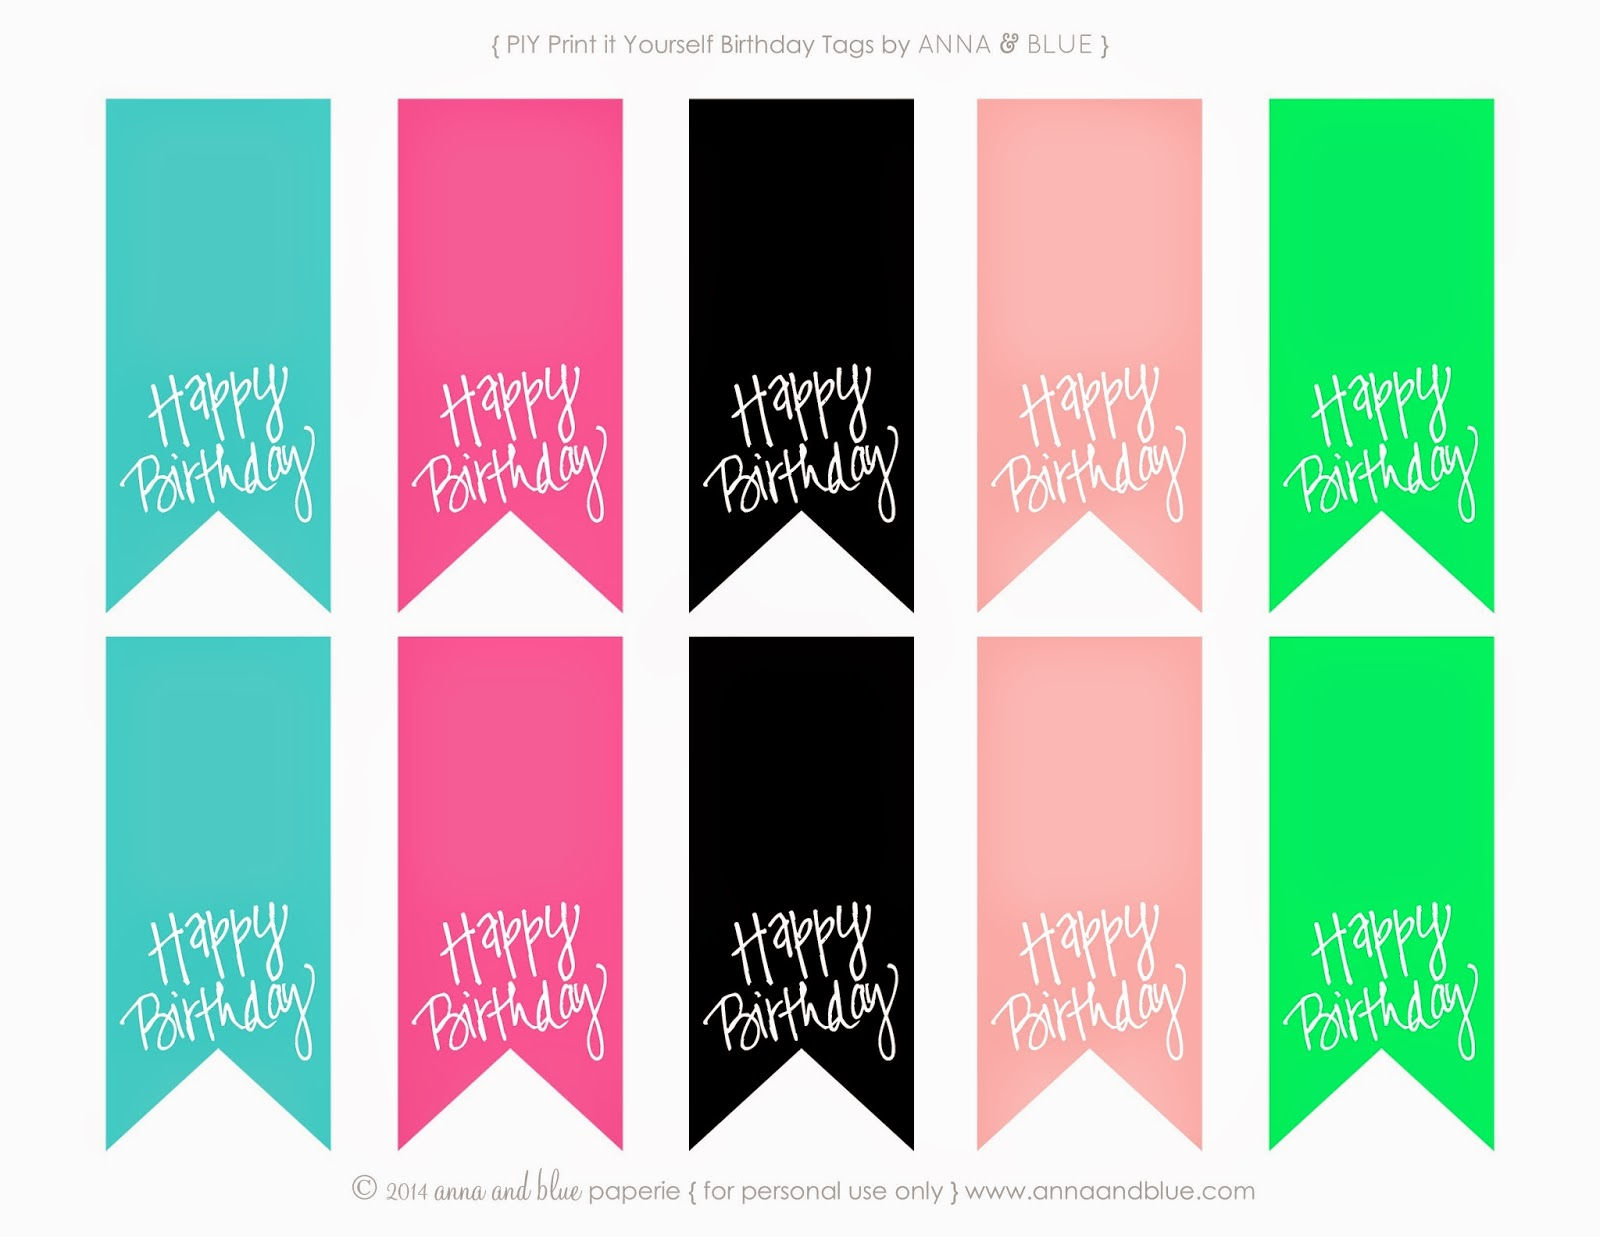 4 Images of Happy Birthday Printable Gift Tags